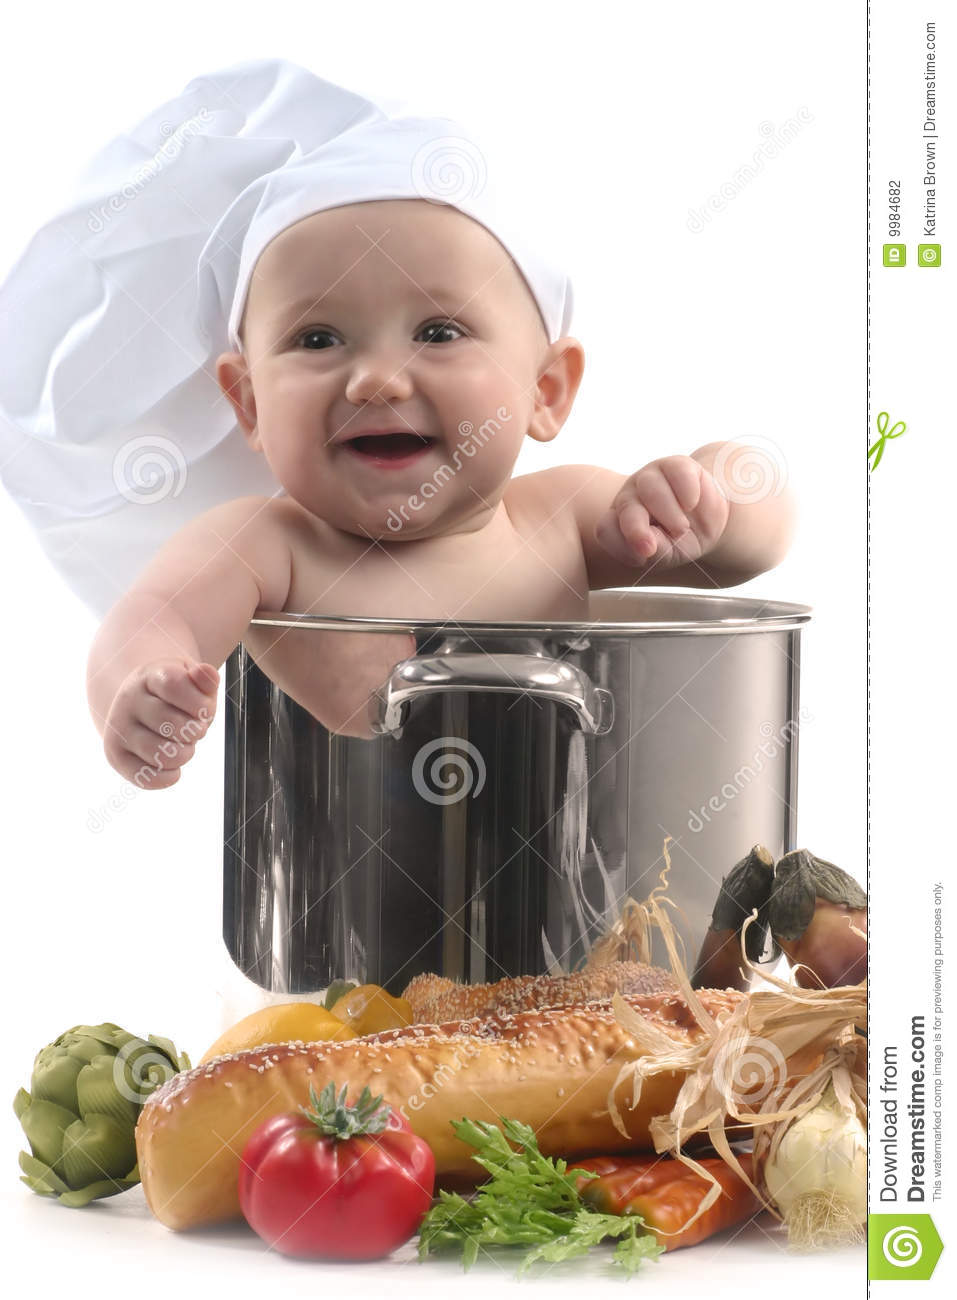 Cute Baby Chef Pot Smiling Photography